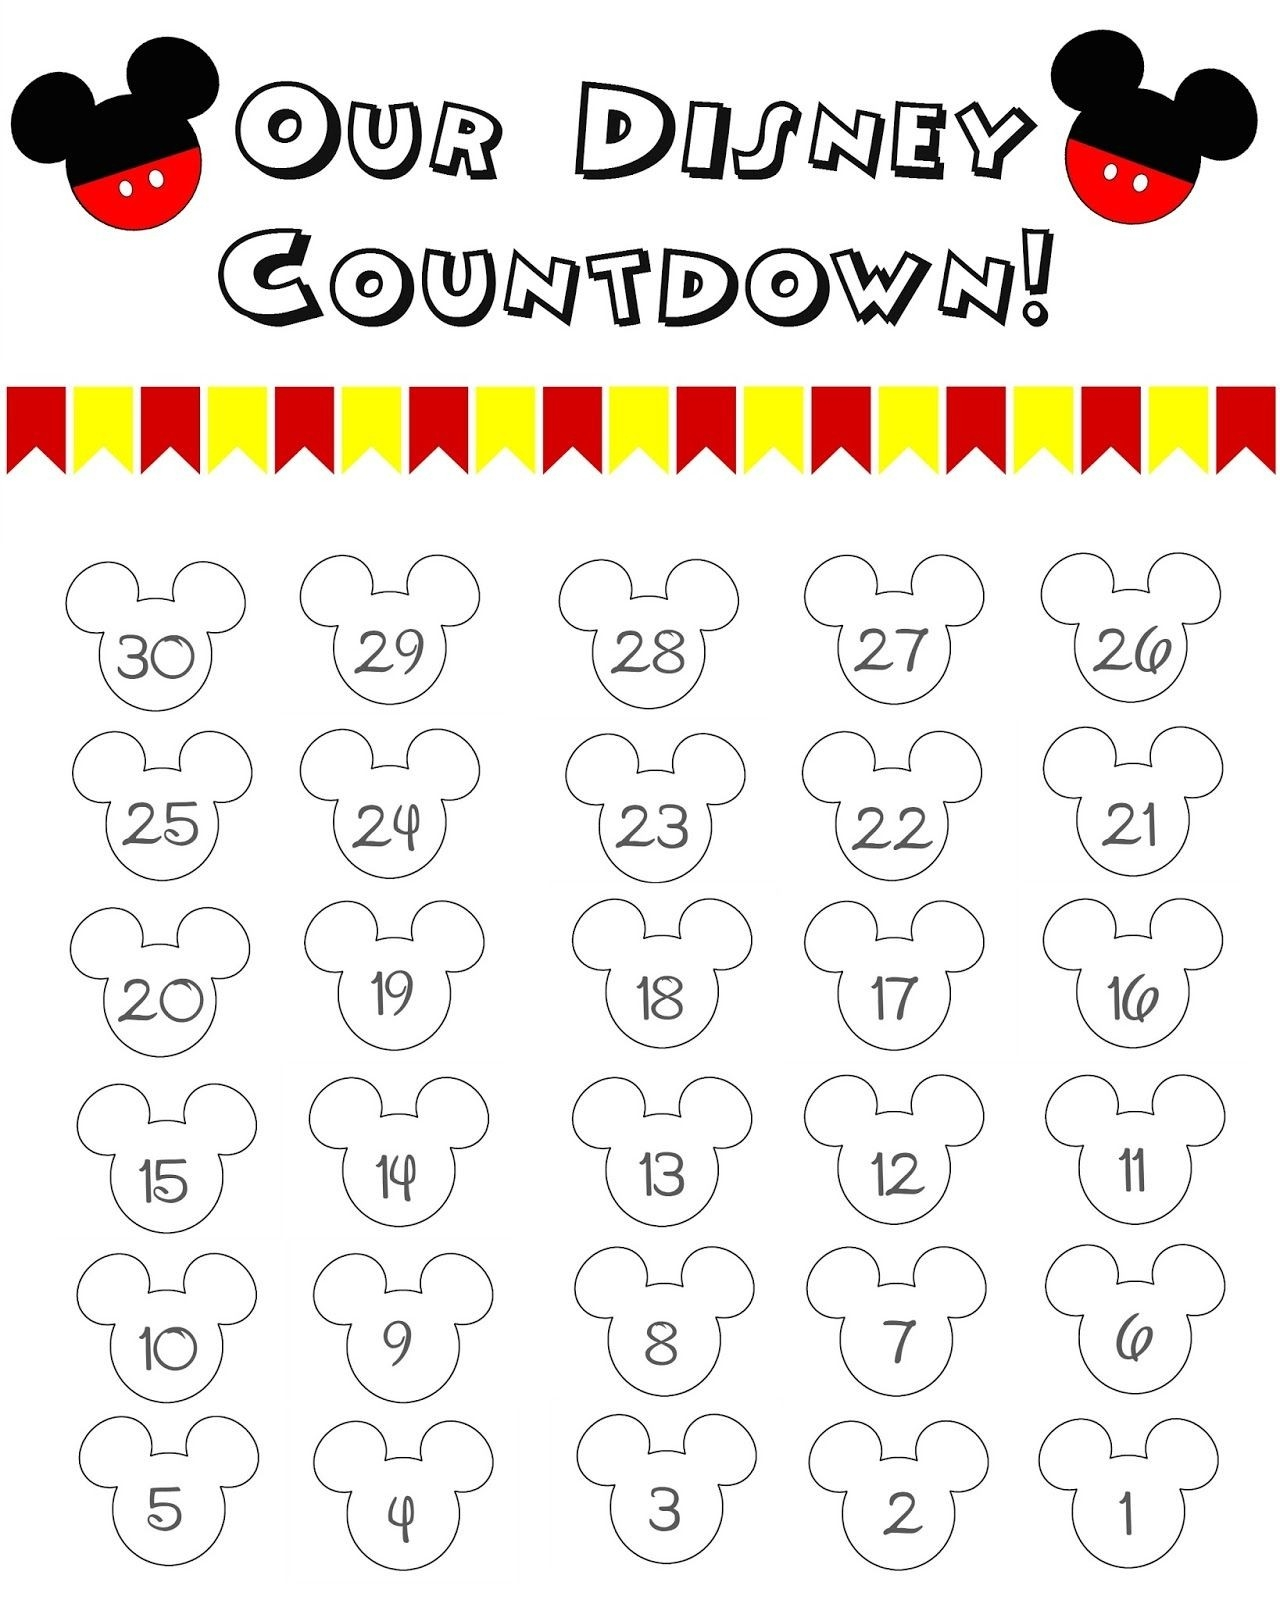 Disney World Countdown Calendar - Free Printable | The Momma-Disney Countdown Calendar Template